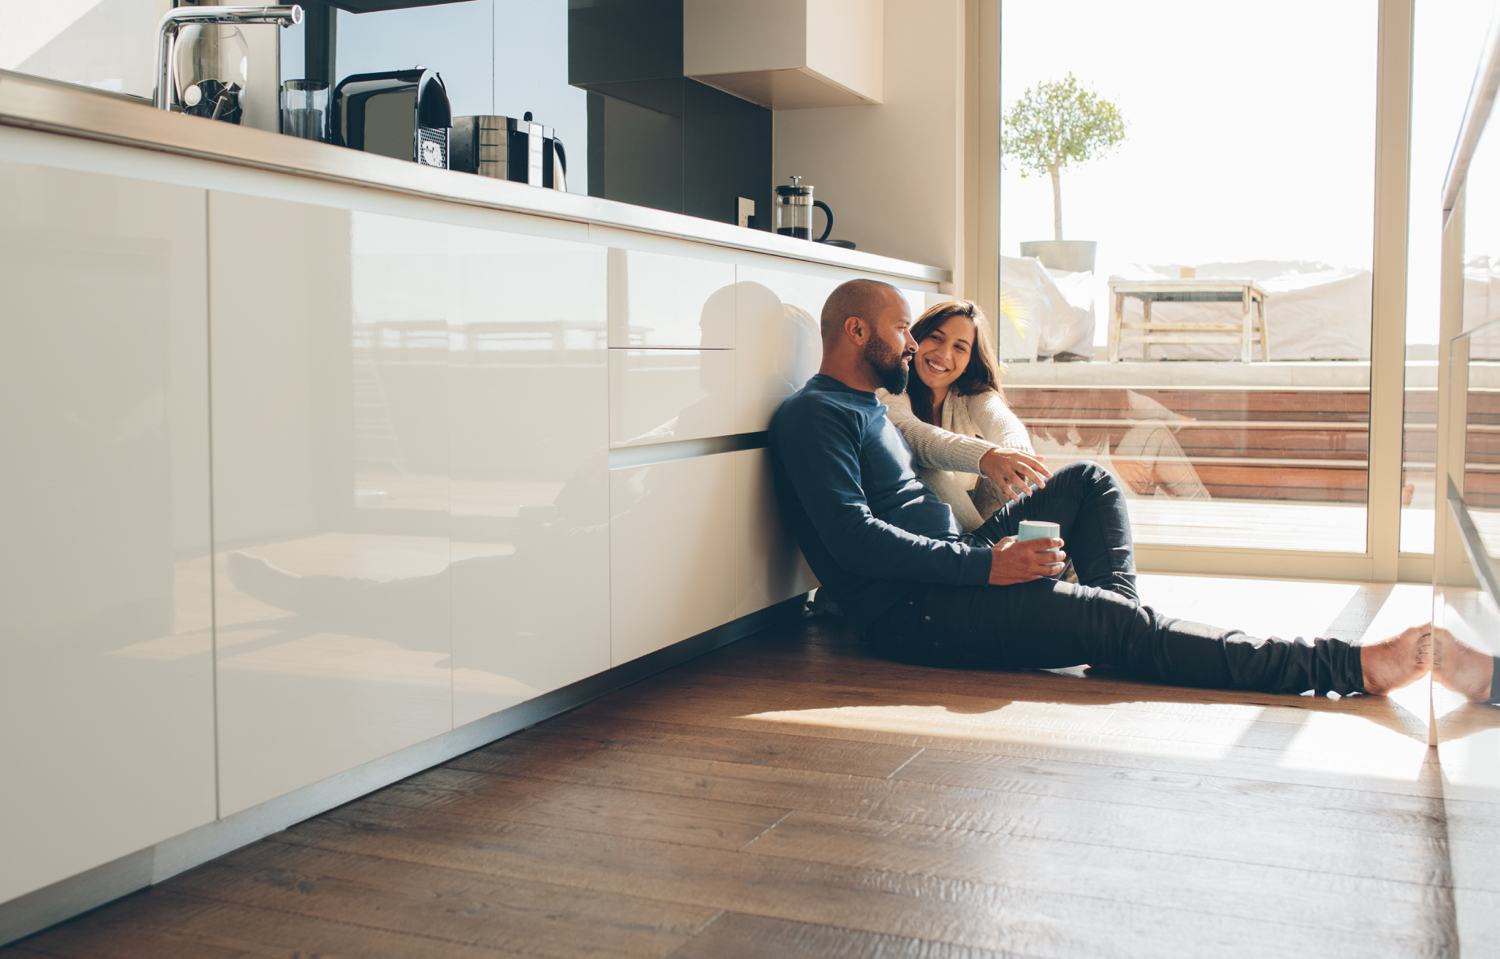 6 Questions to Ask Before Buying New Floors